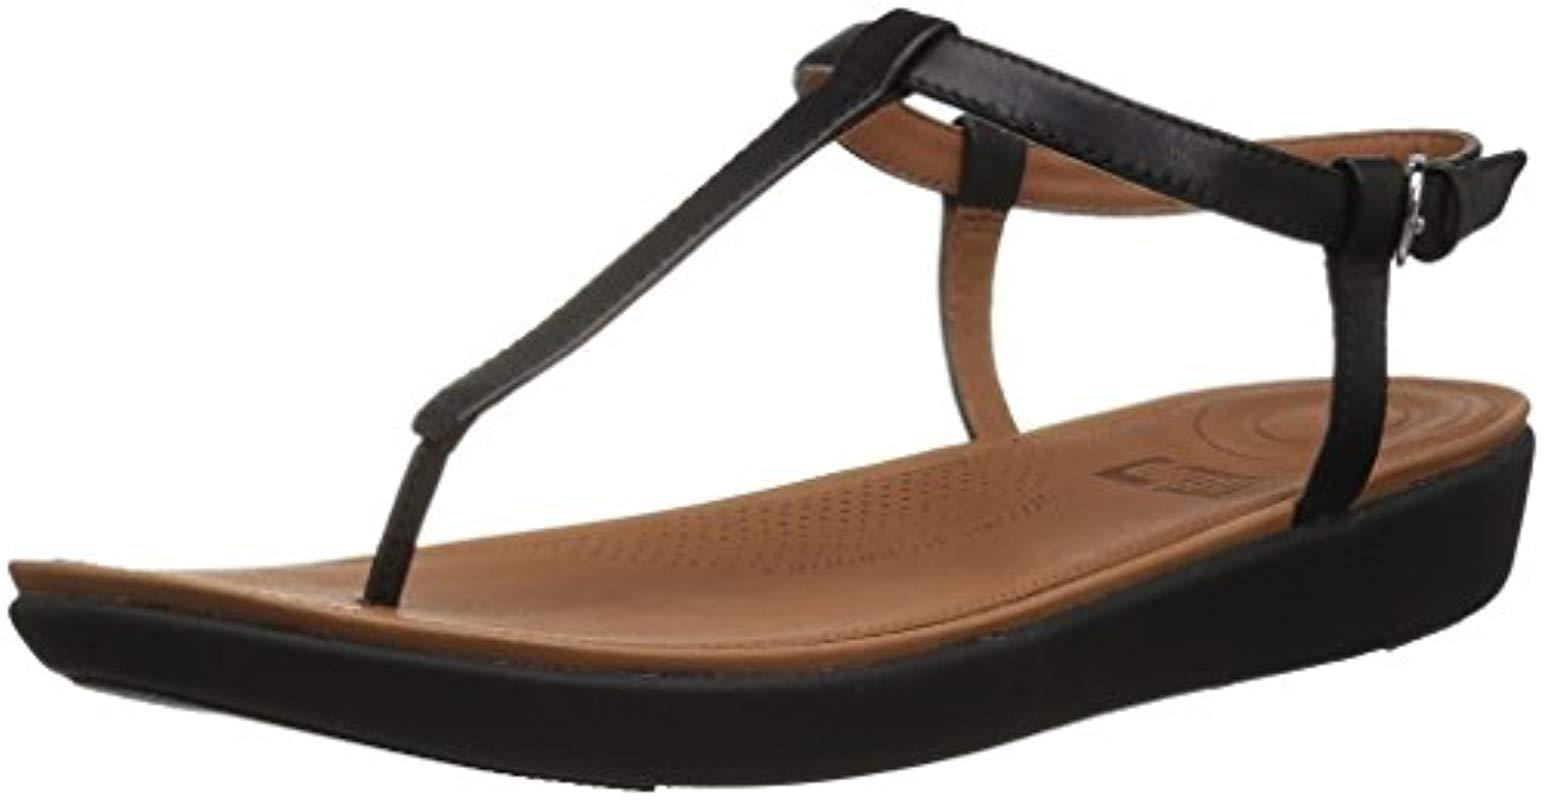 9cf909008cab6 Lyst - Fitflop Tia Toe-thong Flat Sandal in Black - Save 15%